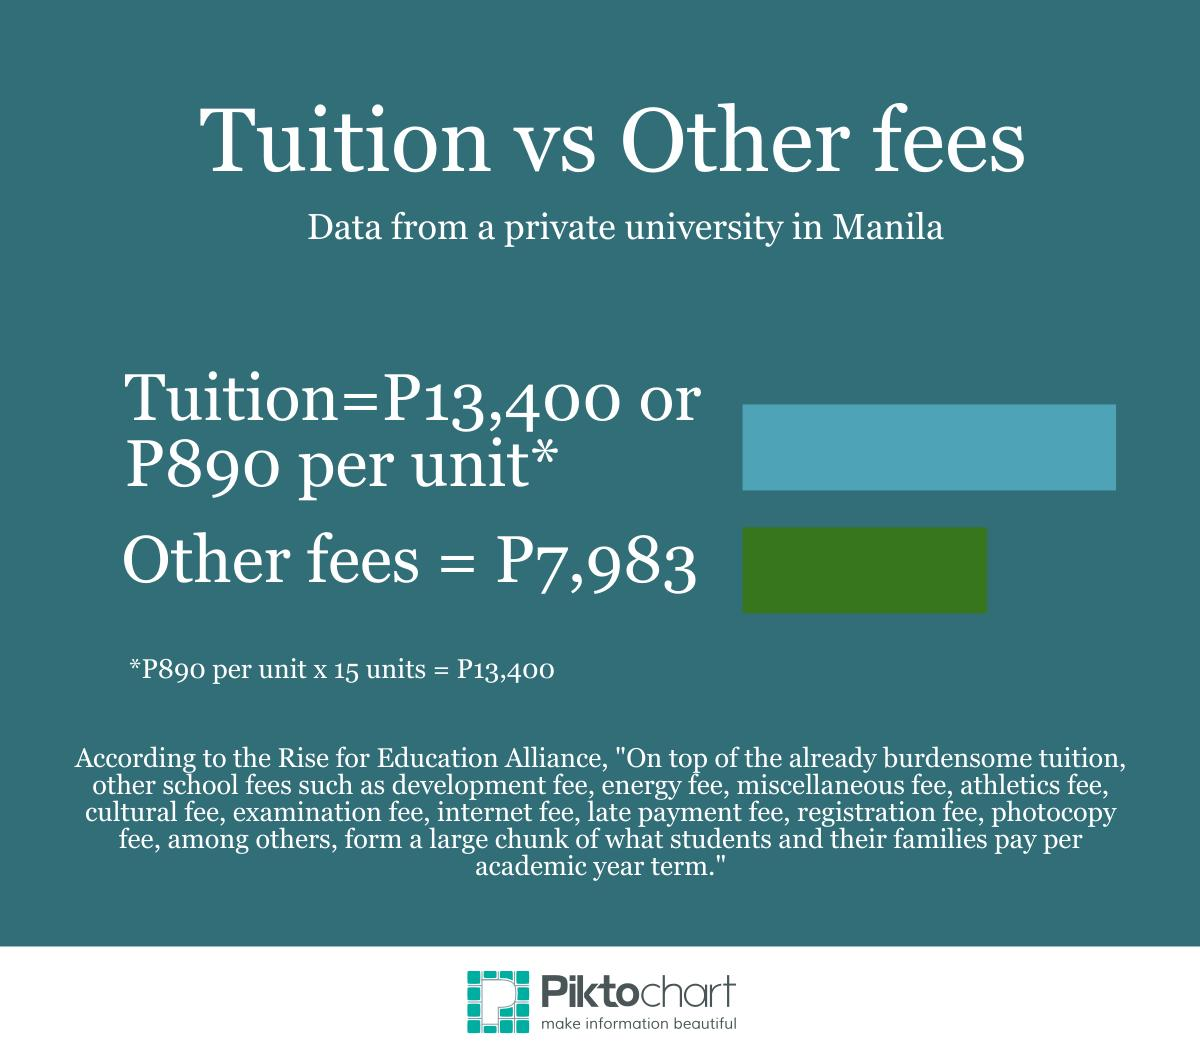 (Dollar conversion: P13,400 or $300, P890 or $20, P7,983 or $179)